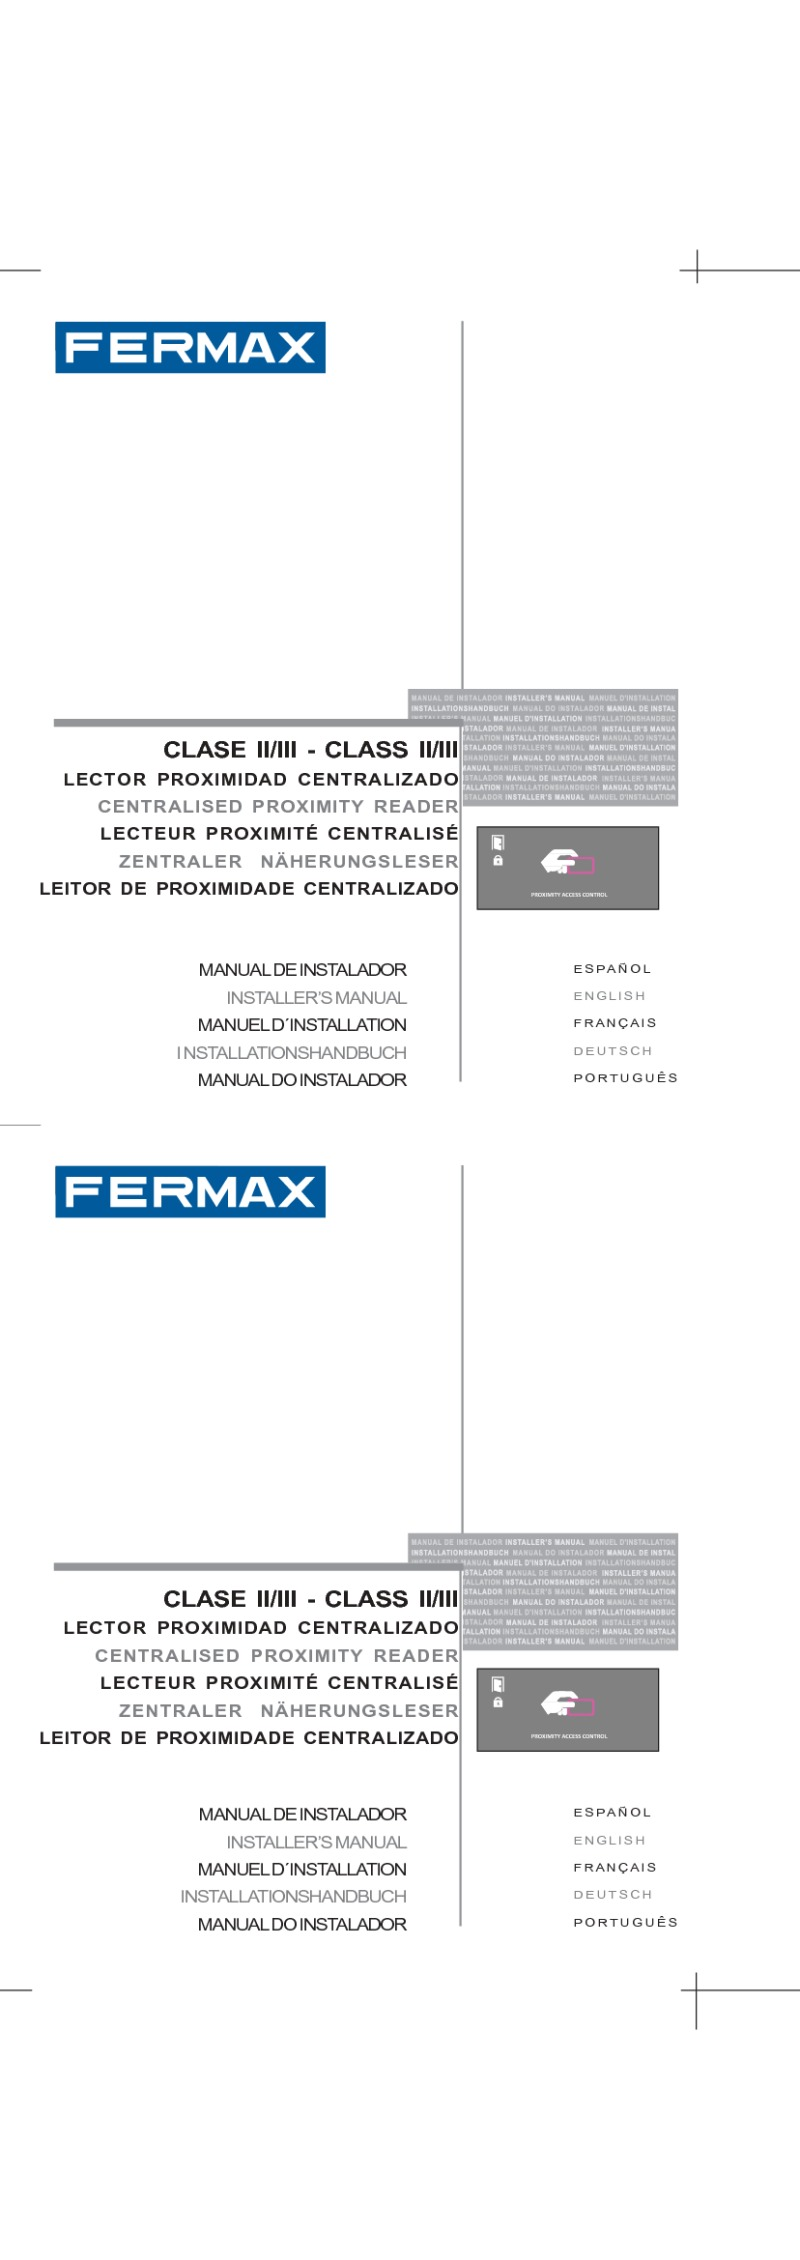 97598b Lector Proximidad Centralizado NCity V10_10 fermax installation instructions fermax cityline wiring diagram at aneh.co